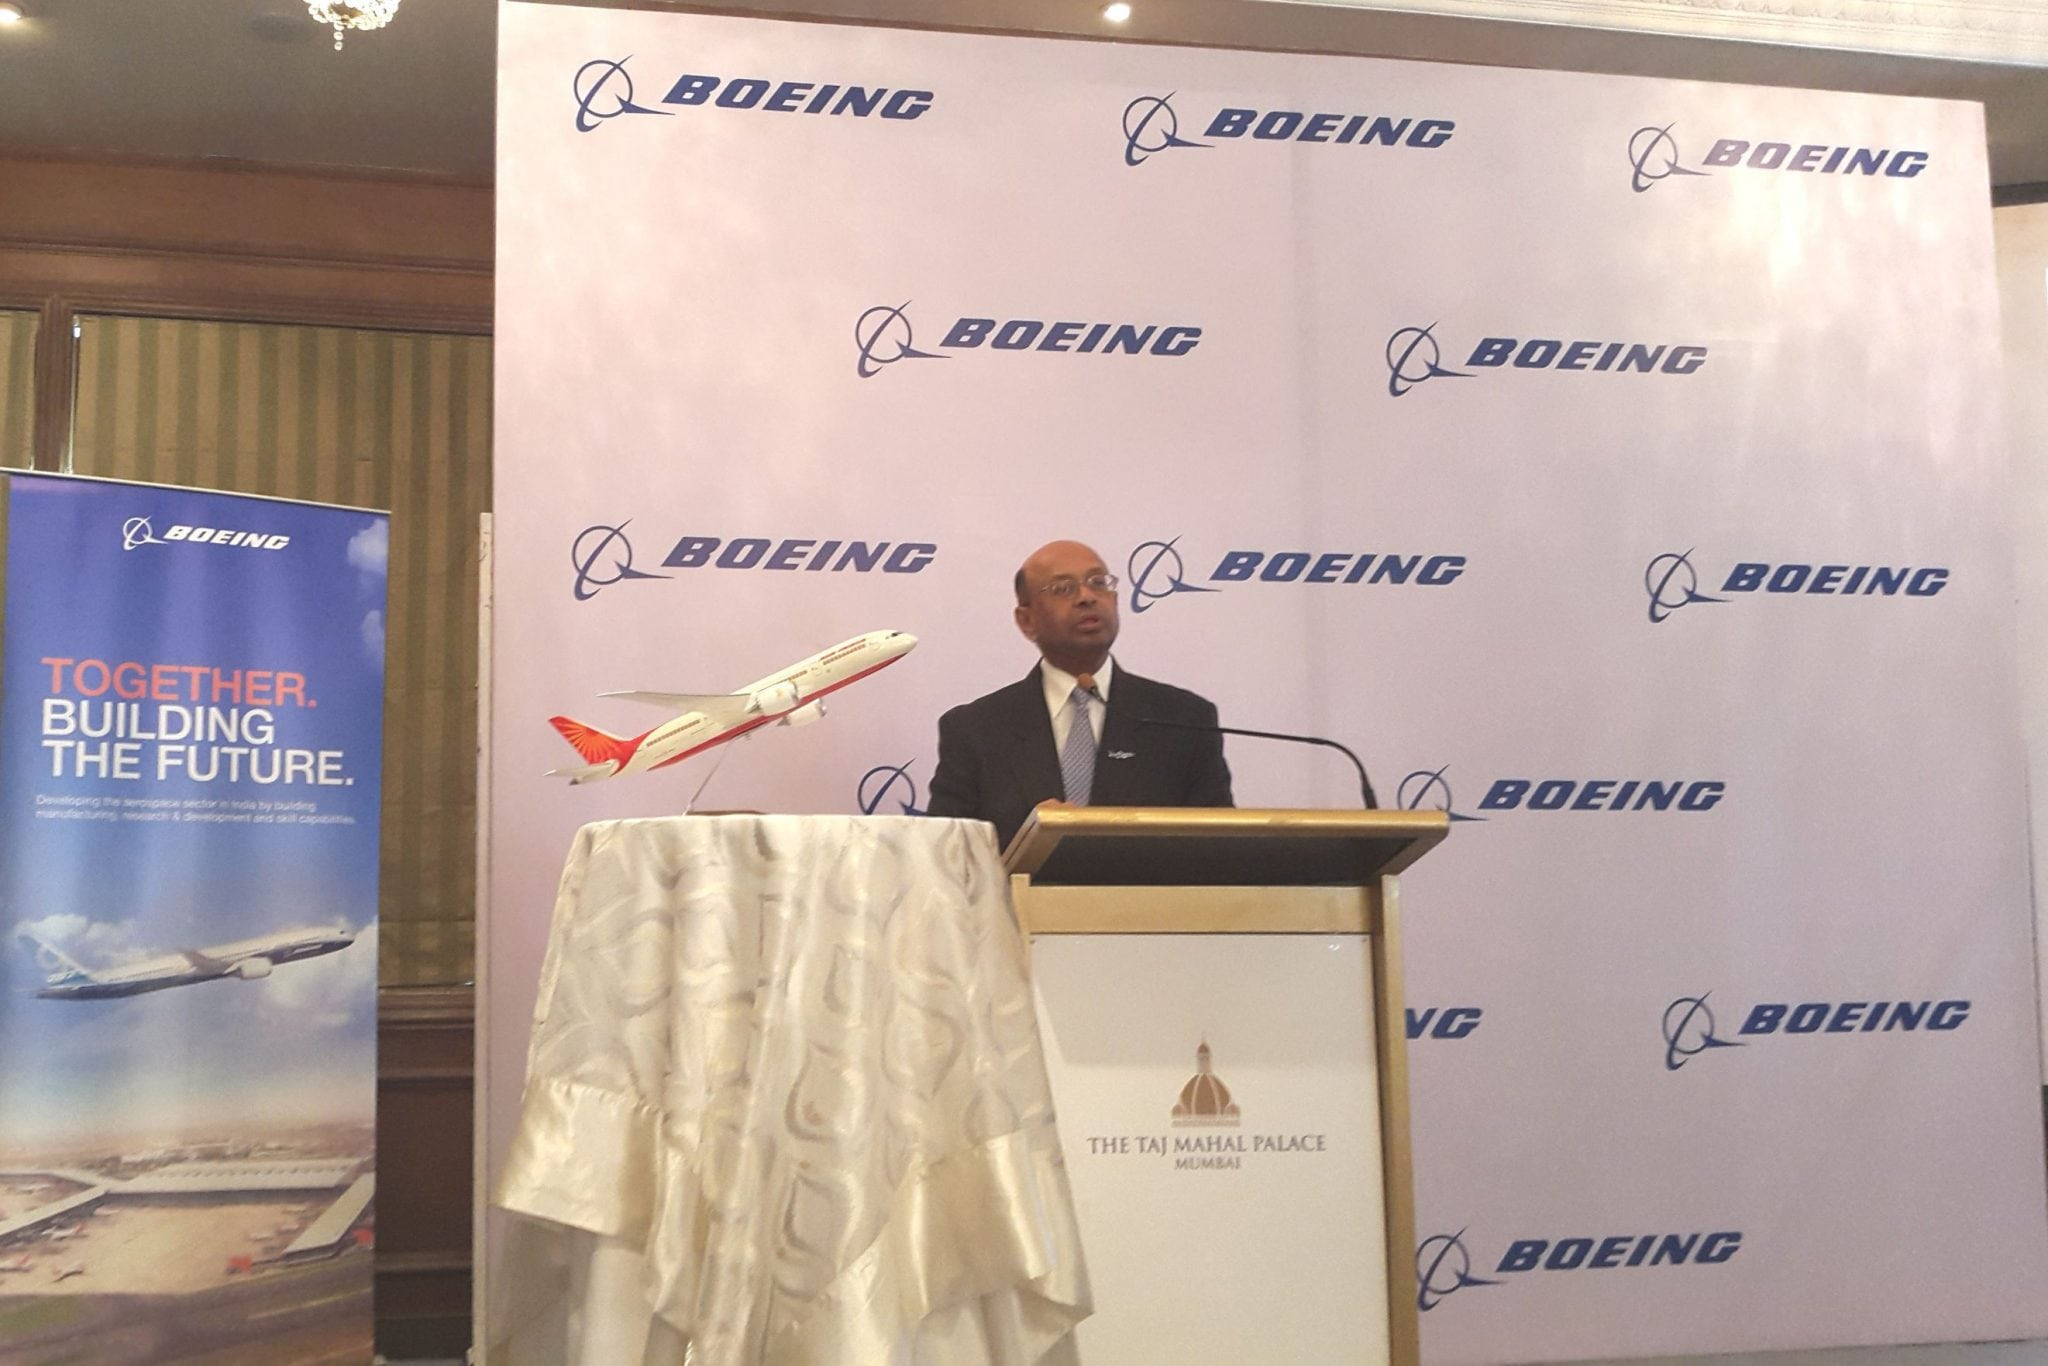 Dinesh Keskar, senior vice president of Asia Pacific and India Sales, Boeing Commercial Airplanes, announcing the company's India Current Market Outlook